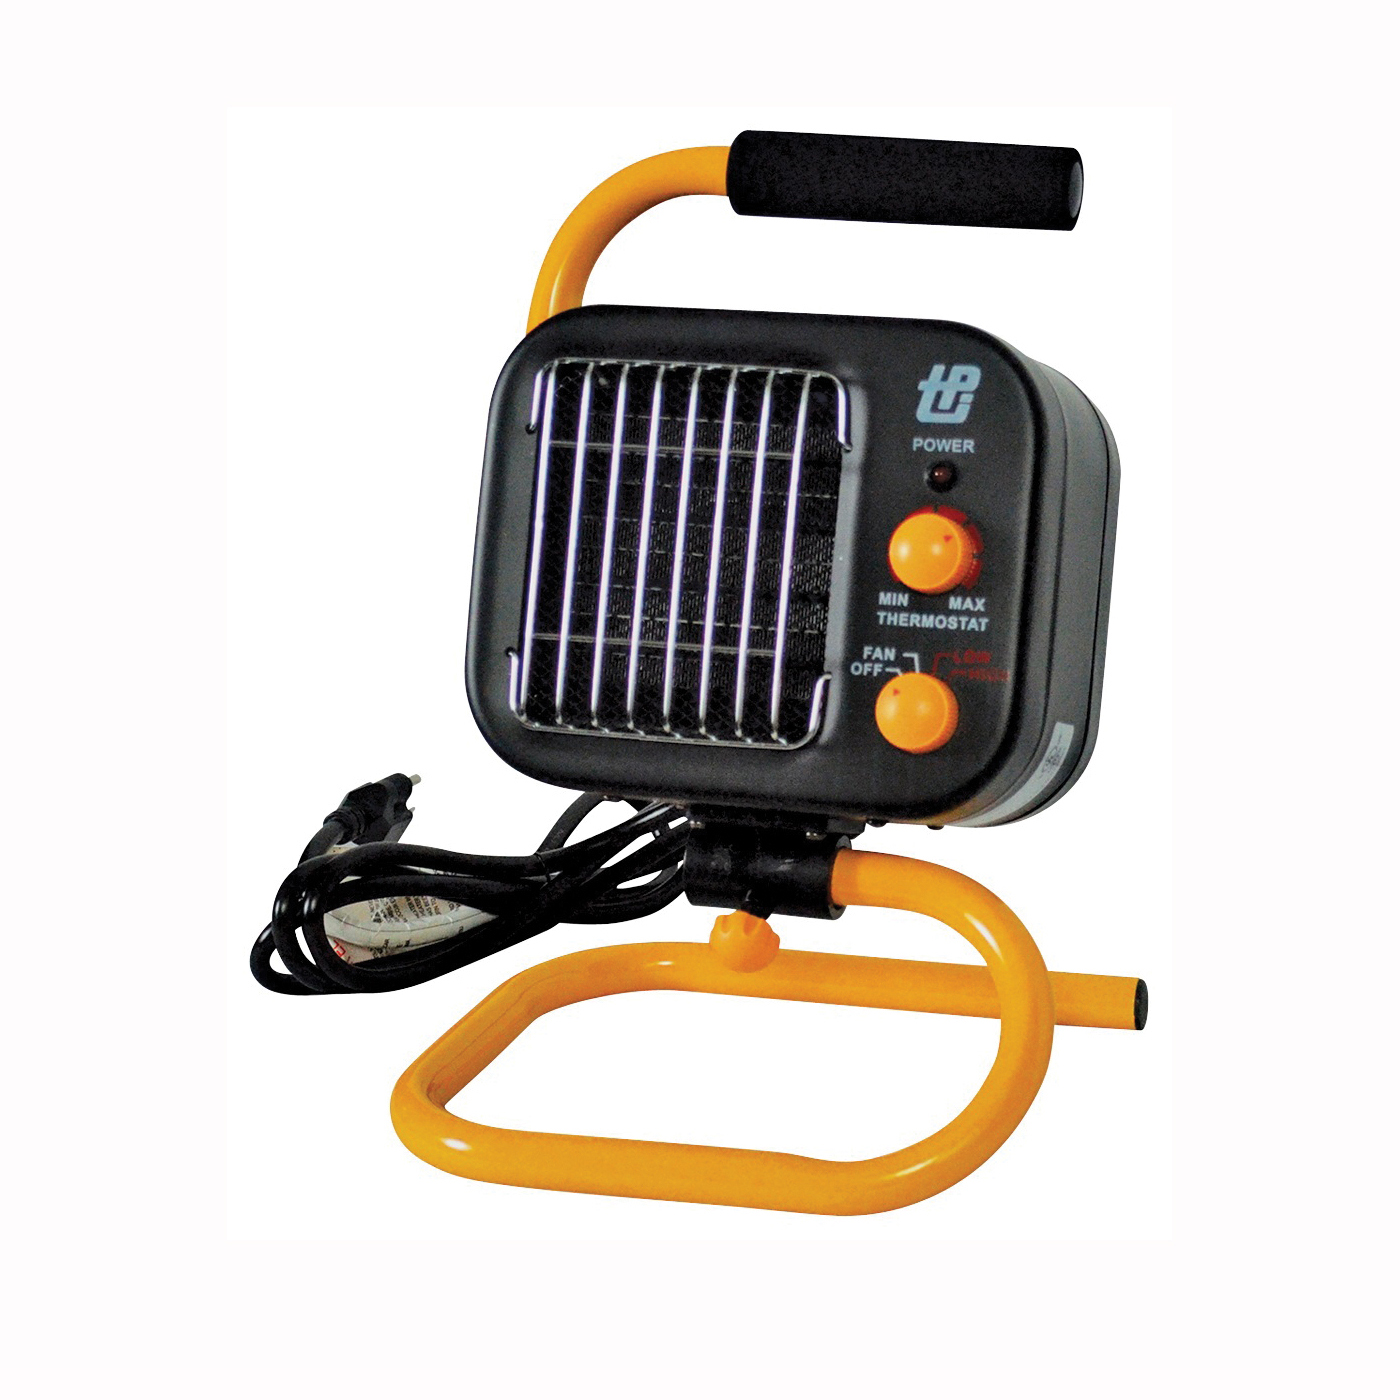 Picture of TPI 178TMC Portable Heater, 12.5/7.1 A, 120 V, 850/1500 W, 5120 Btu Heating, 2-Heat Setting, Black/Yellow